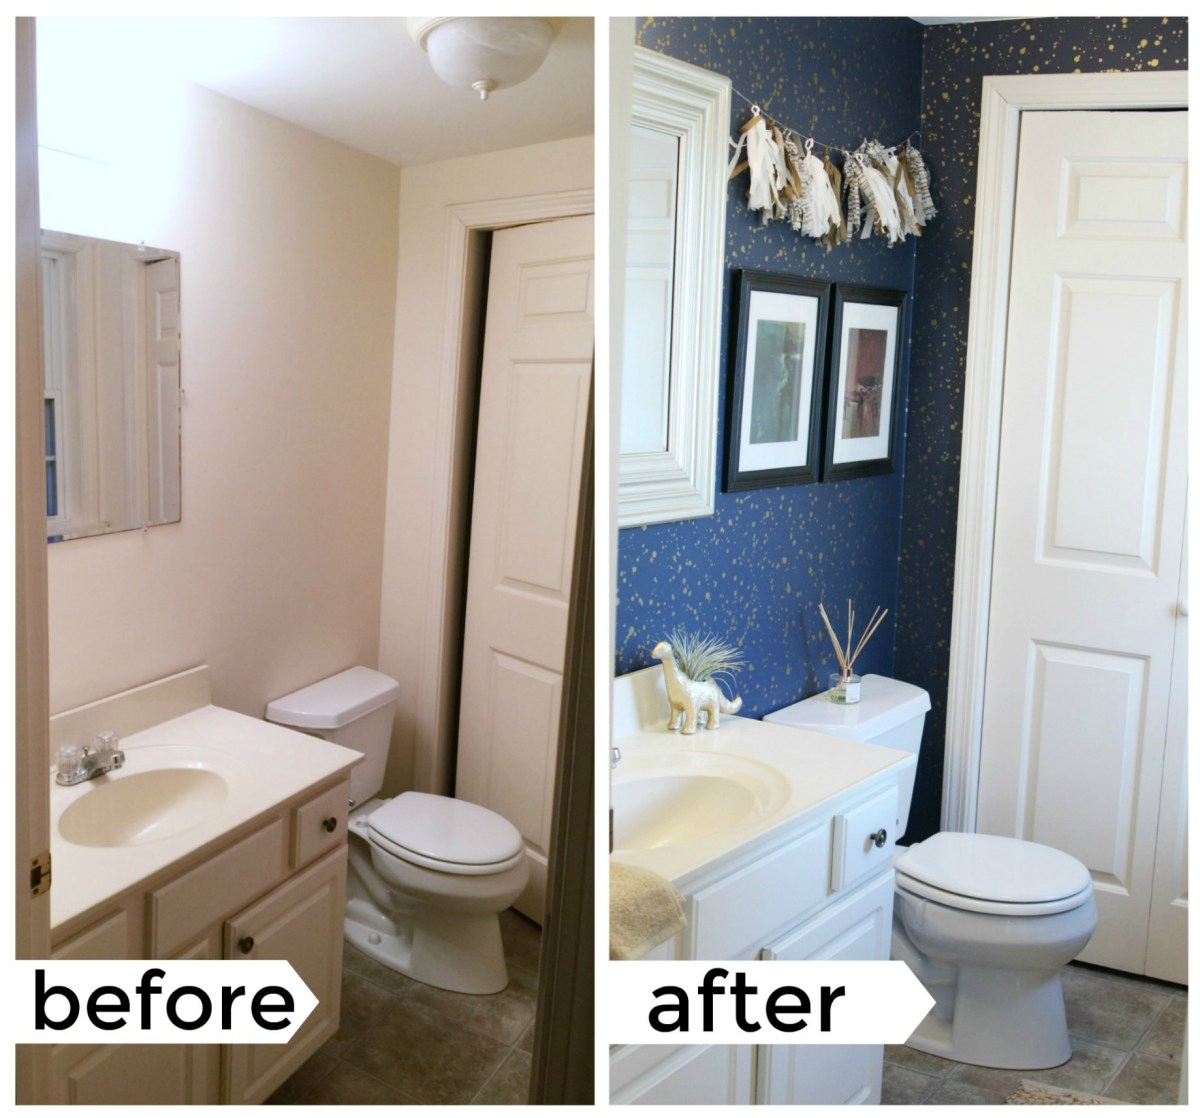 Before And After Bathroom Makeovers On A Budget: How To Decorate Your Rental Space? Bathroom Rental Decor